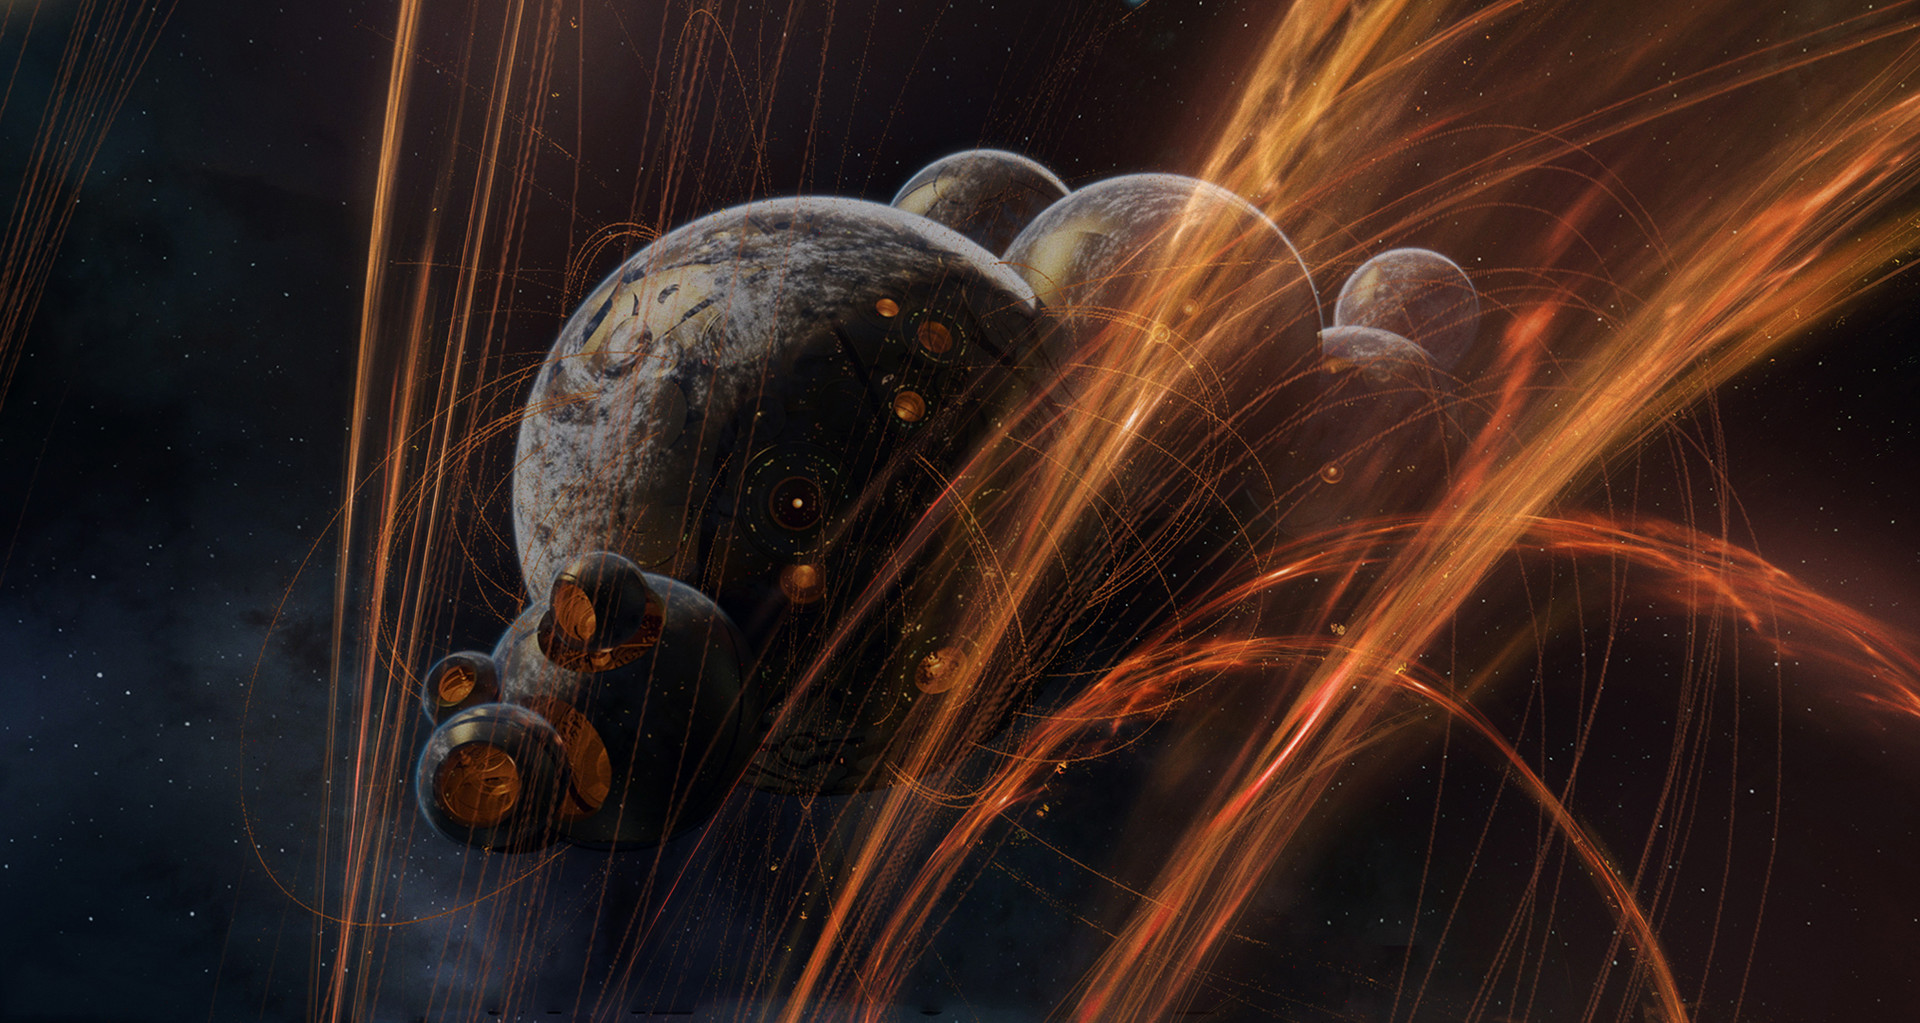 These orange streaks were added to help with parallax during the chase sequence. Planets were WIP by Framestore VFX team.